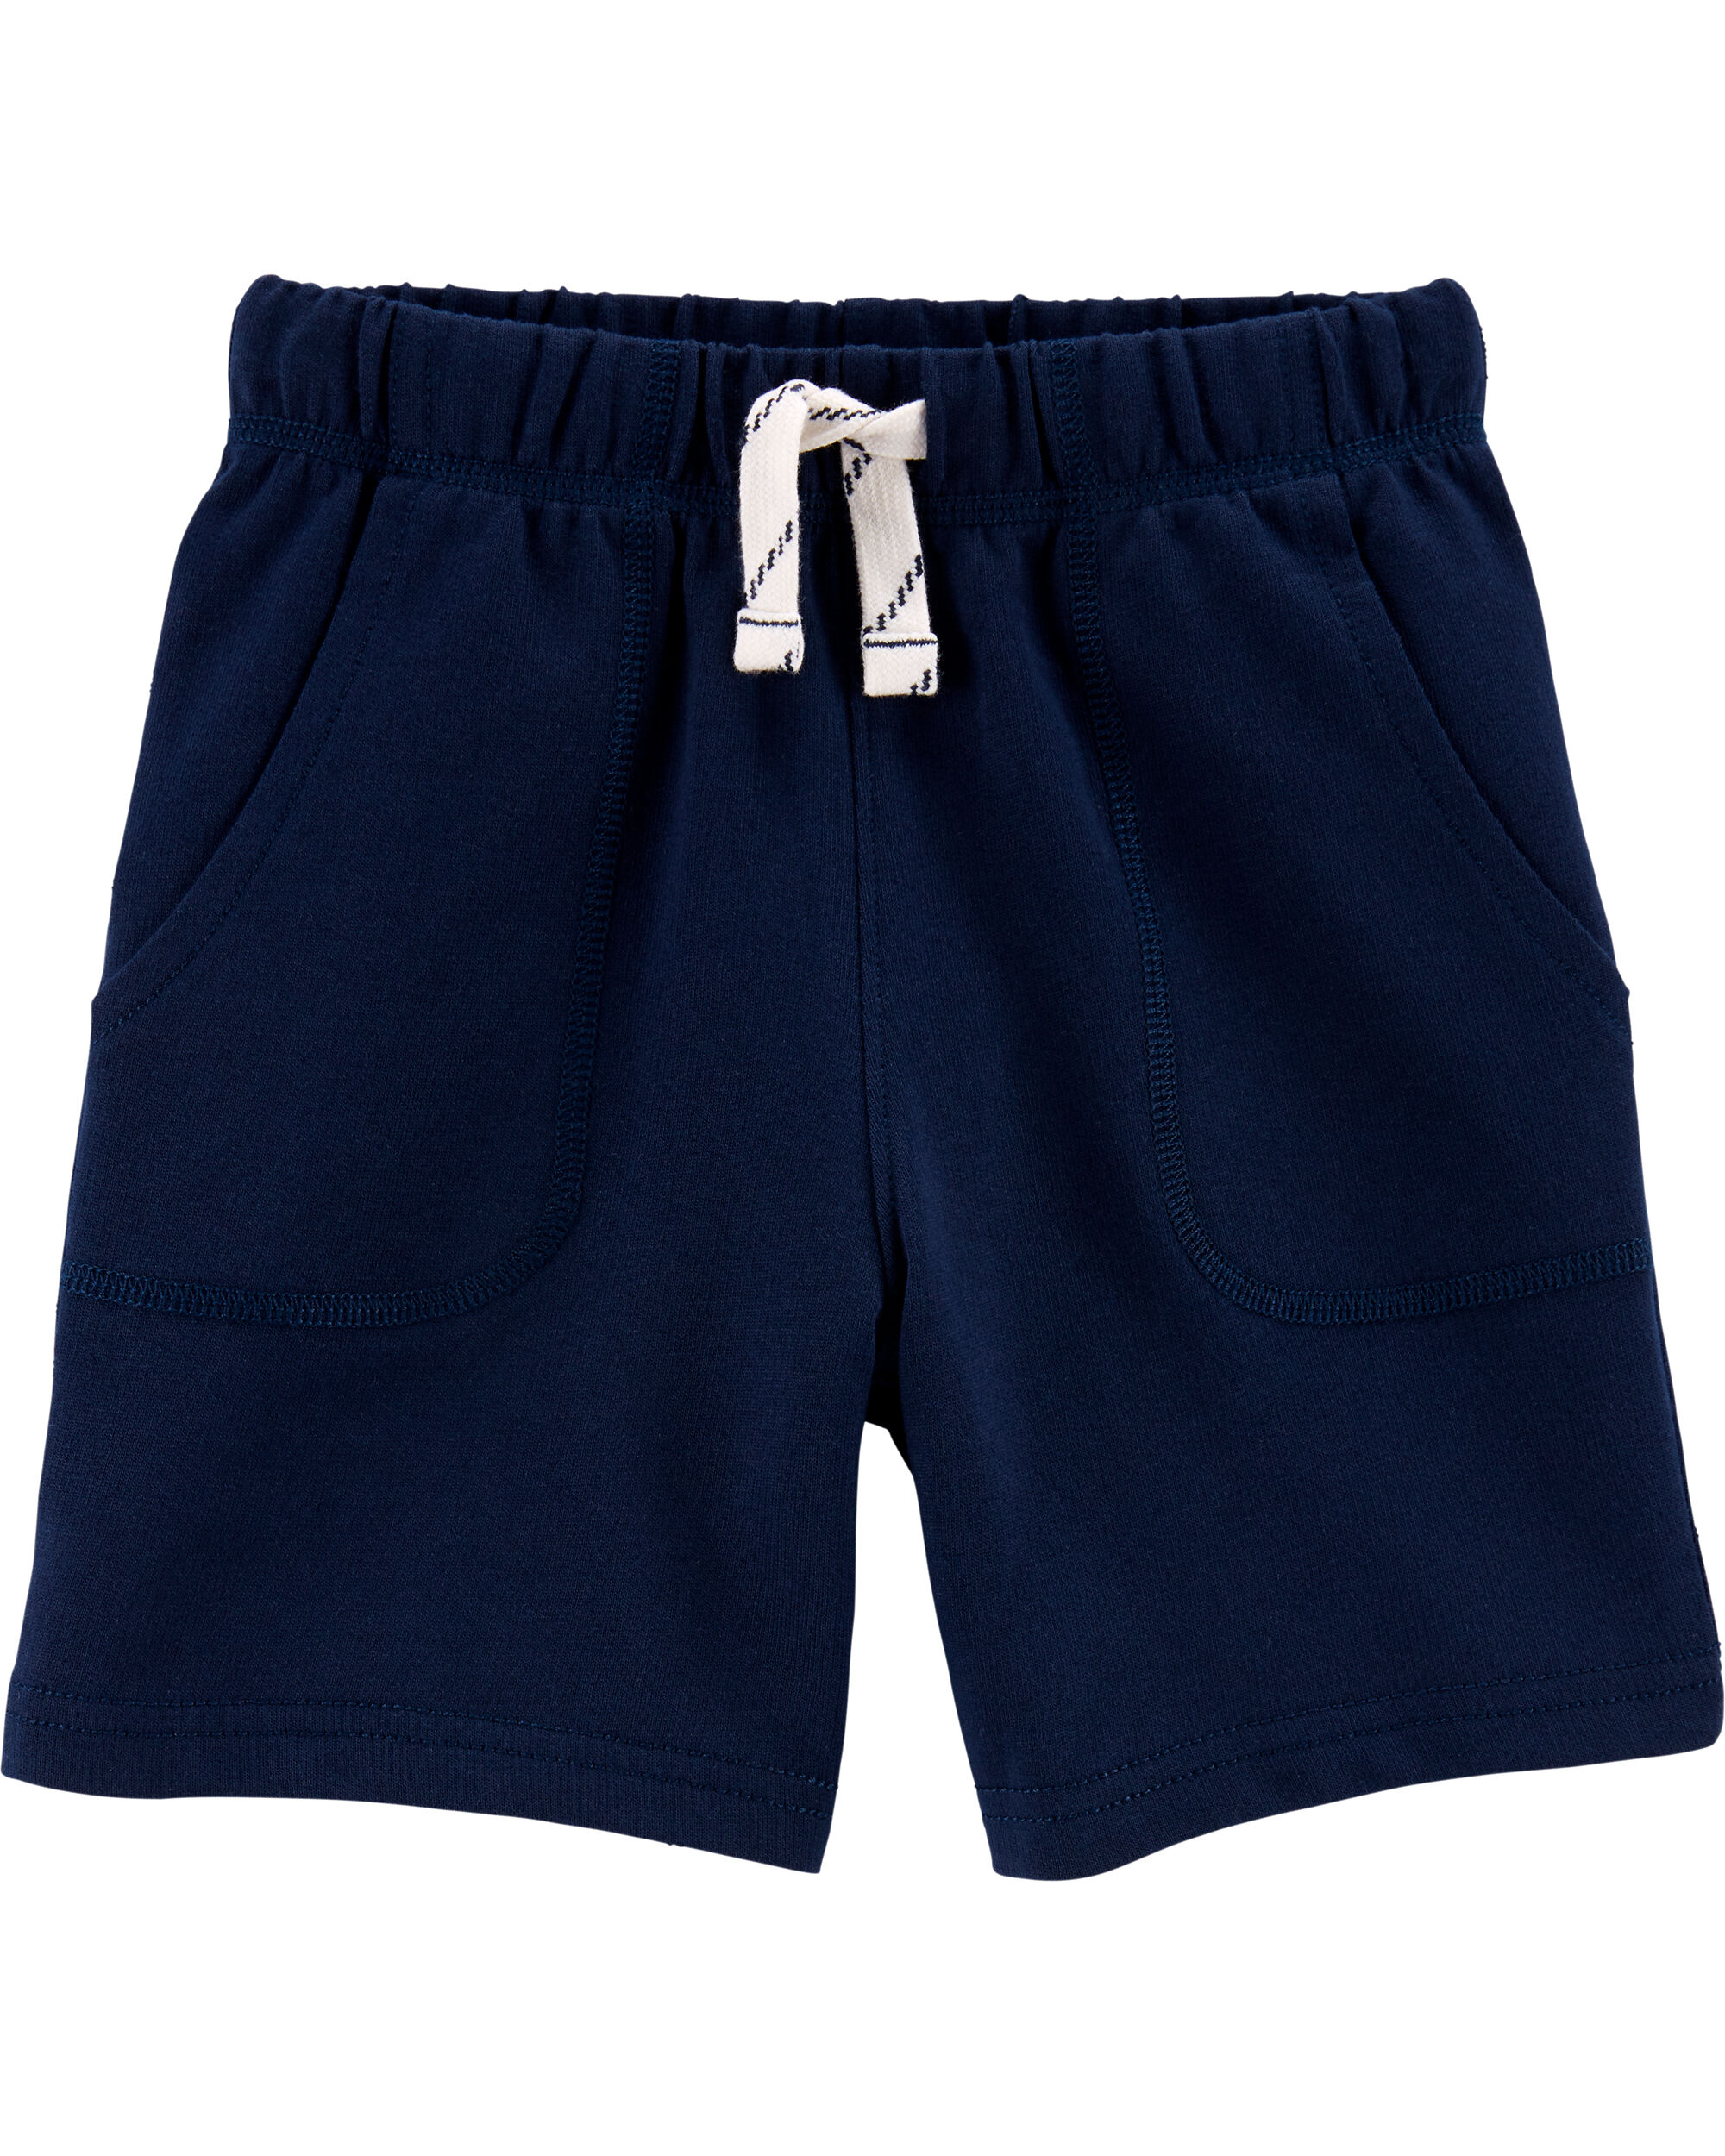 3T Orange Carters Boys Flat Front Canvas Shorts